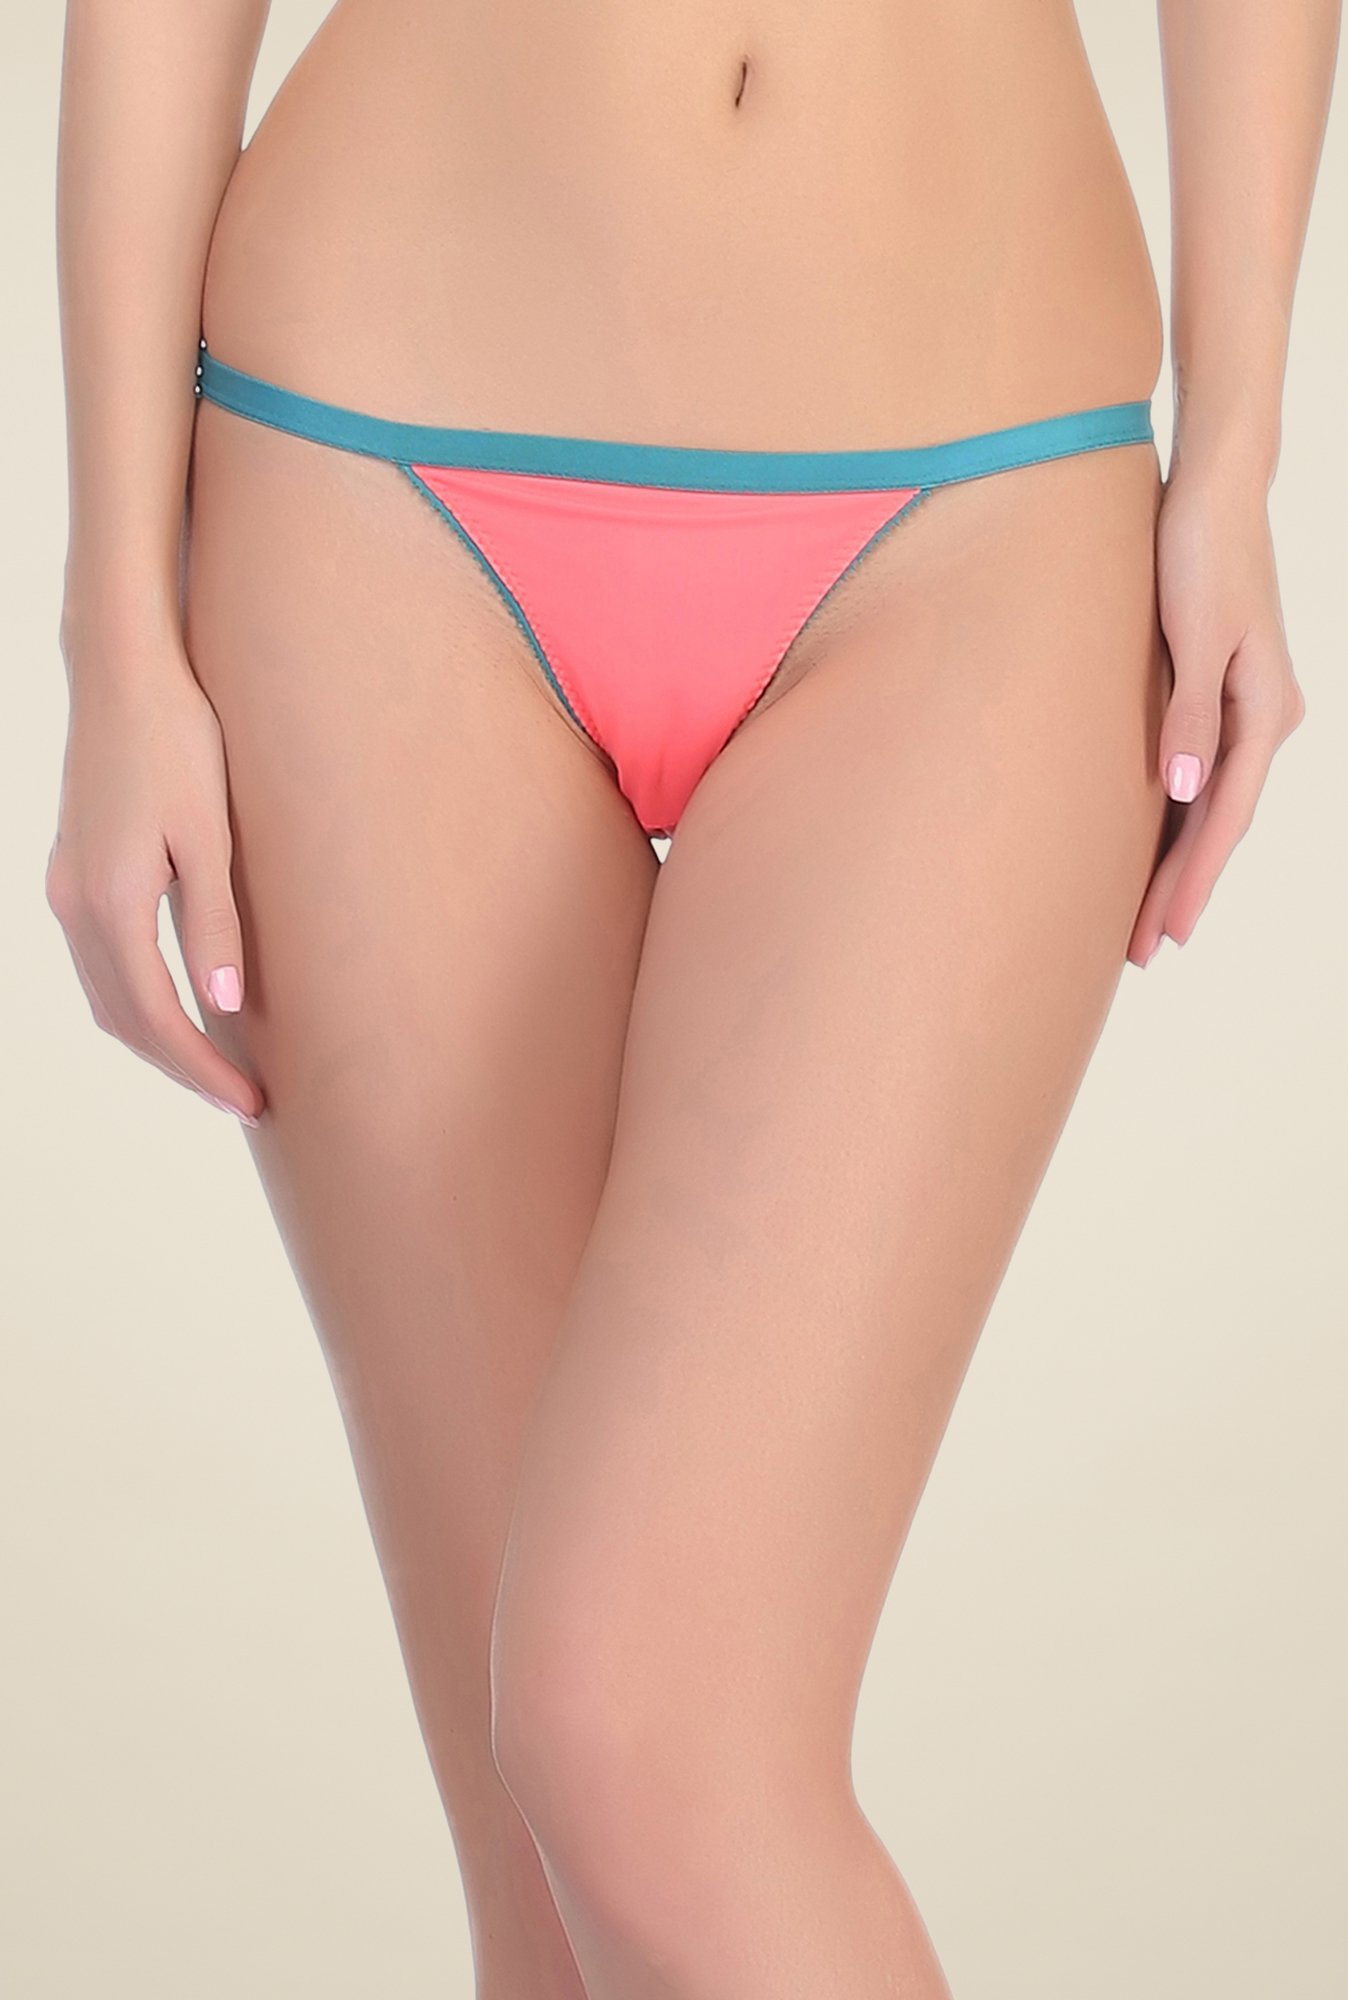 Clovia Peach & Teal Solid Thong Panty